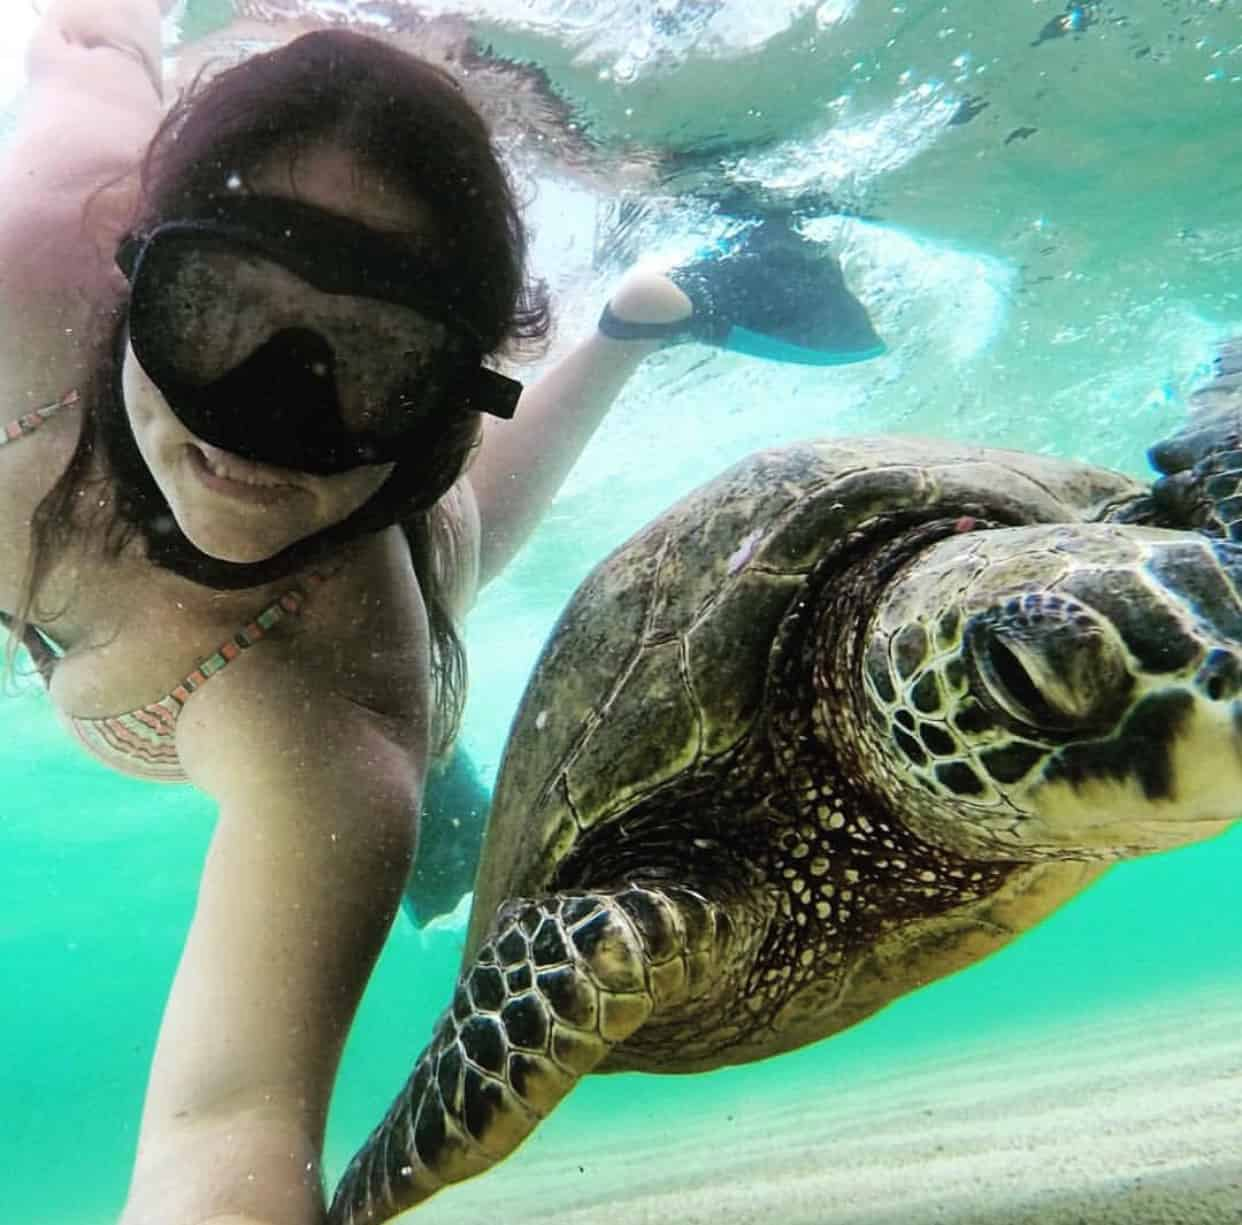 Turtle selfie during Kauai Snorkeling Tour